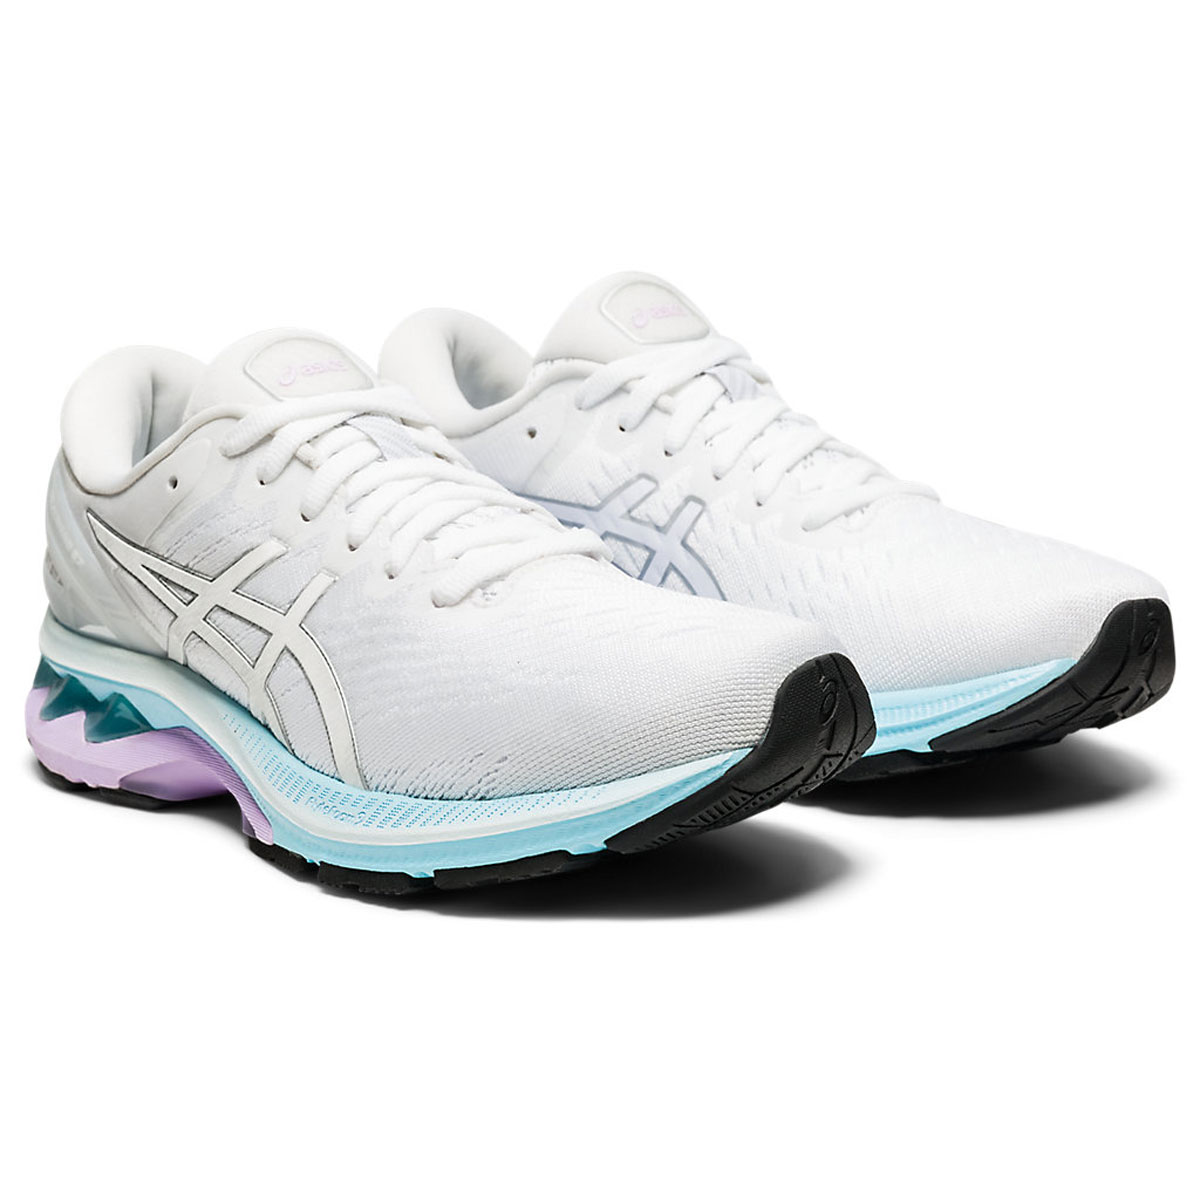 Women's Asics GEL-Kayano 27 Running Shoe - Color: White/Pure Silv (Regular Width) - Size: 5, White/Pure Silver, large, image 3